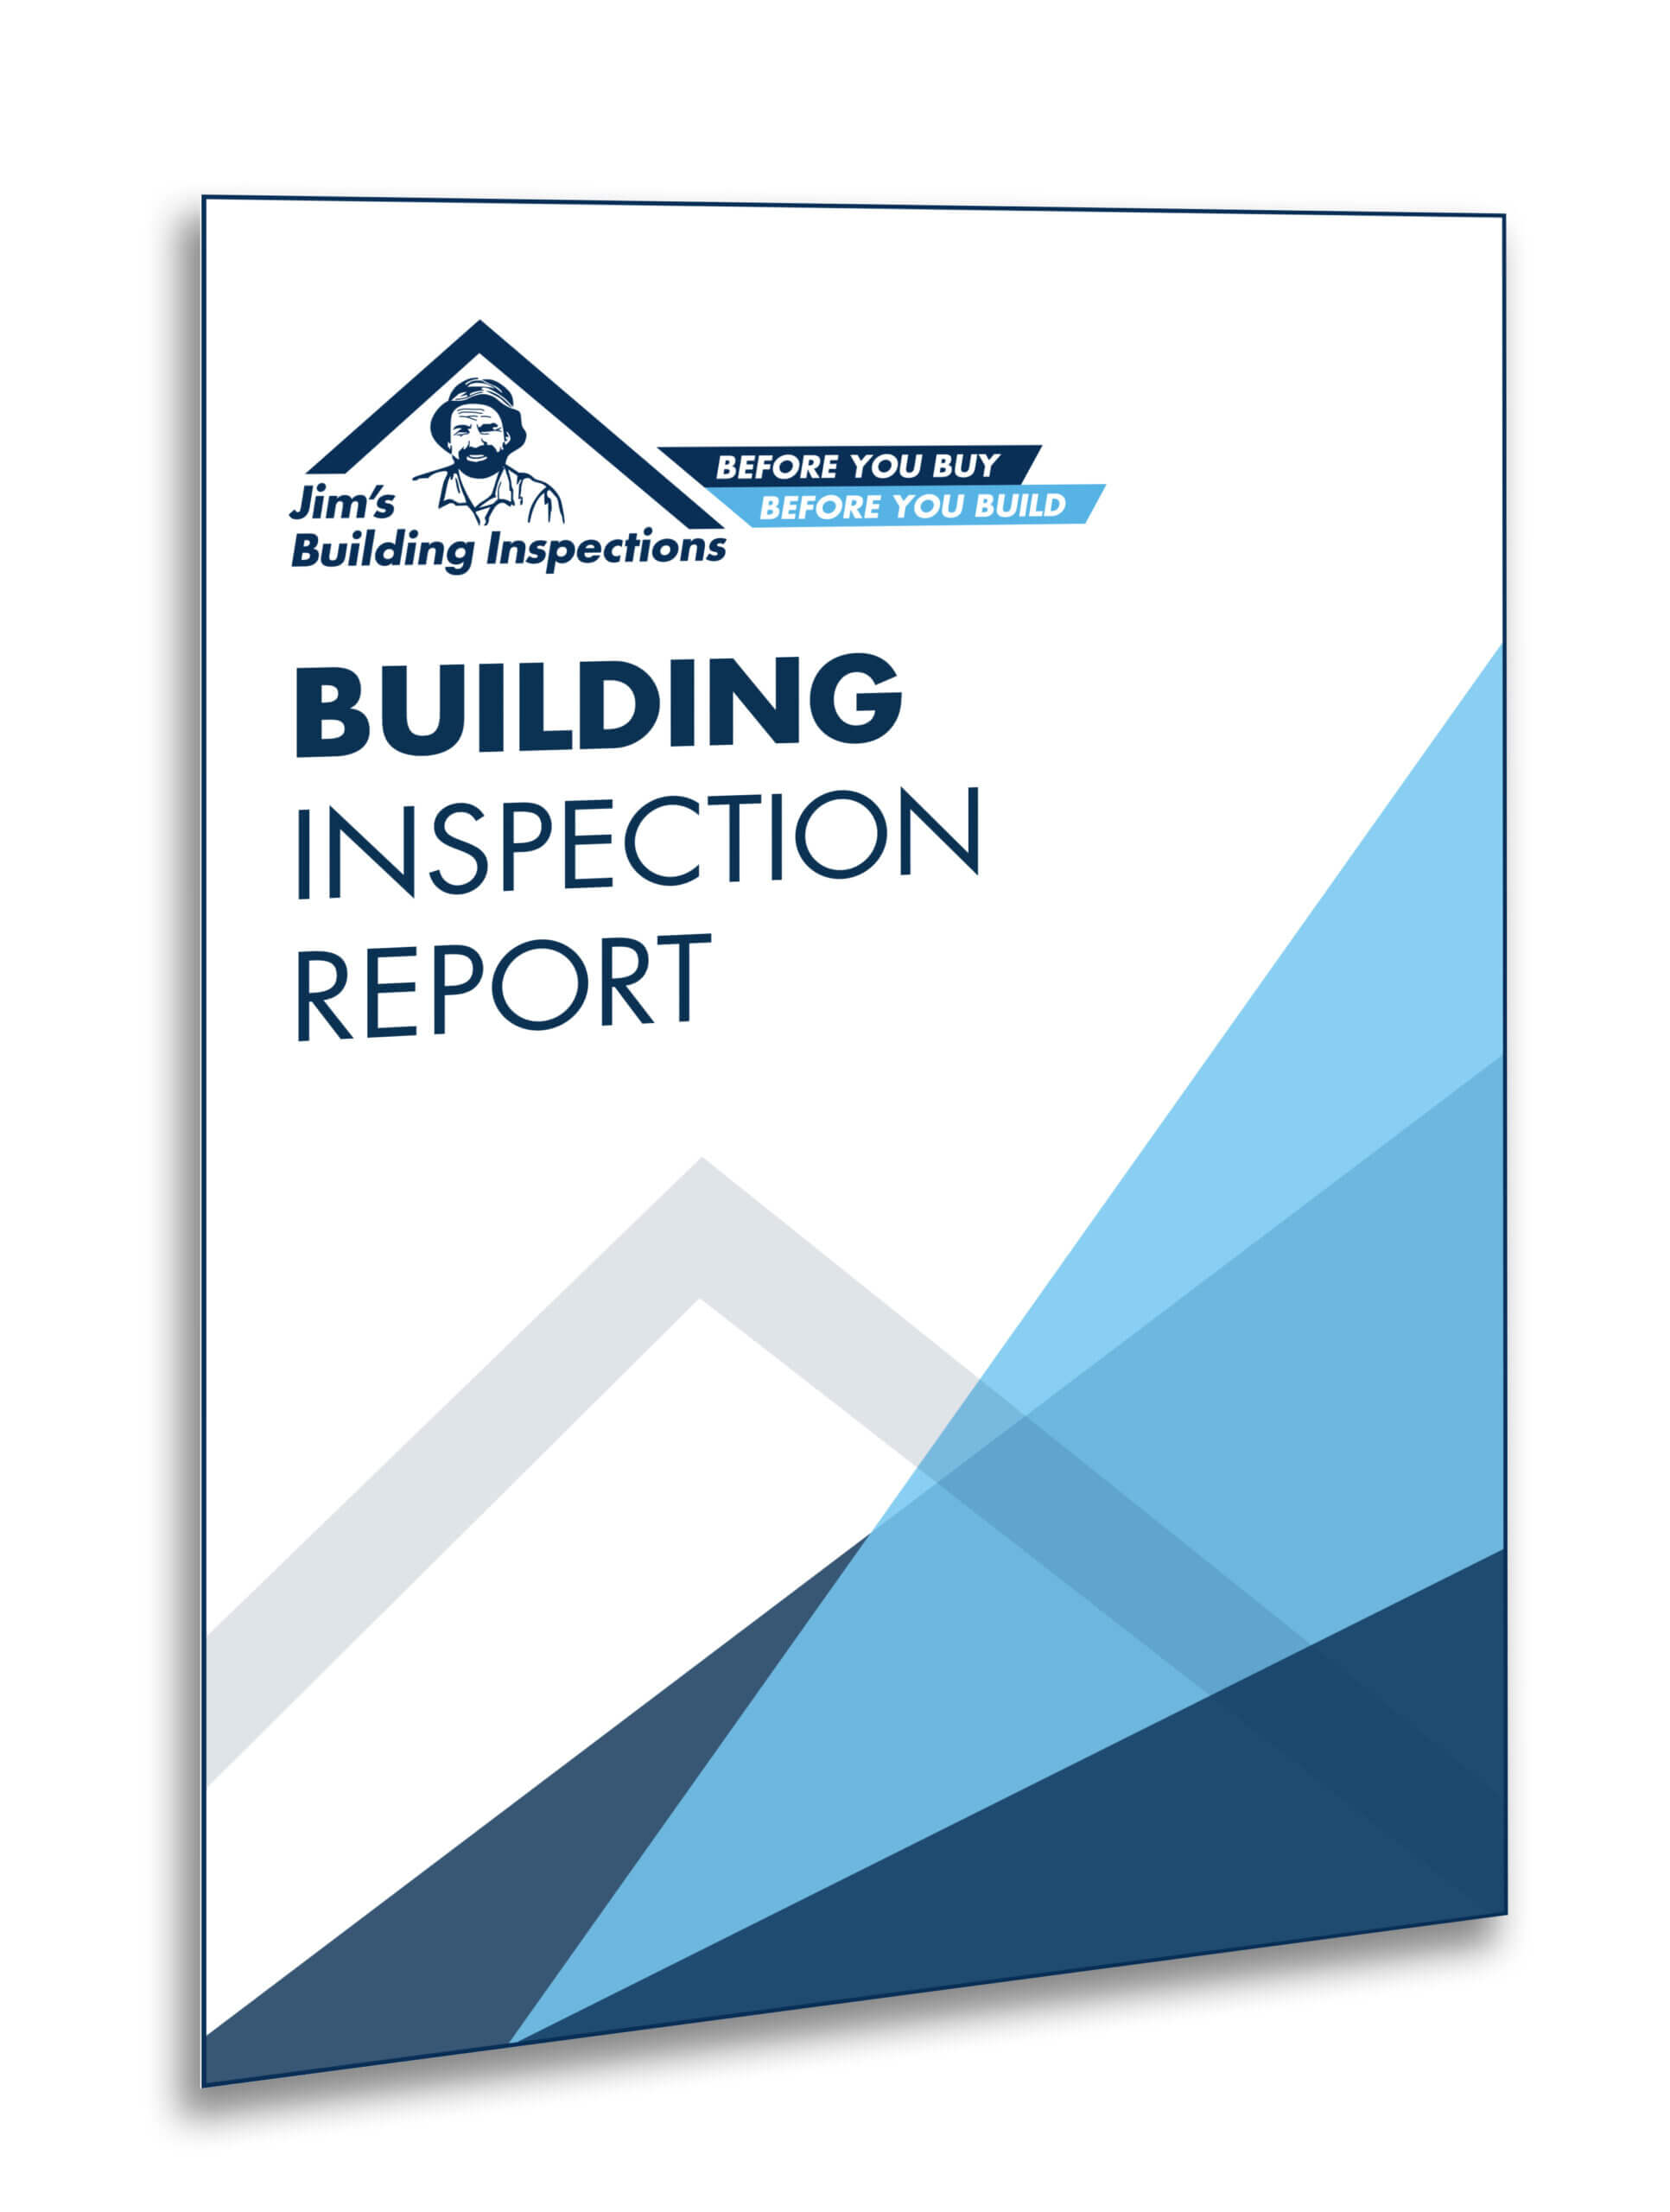 Sample Reports | Jim's Building Inspections Pertaining To Pre Purchase Building Inspection Report Template